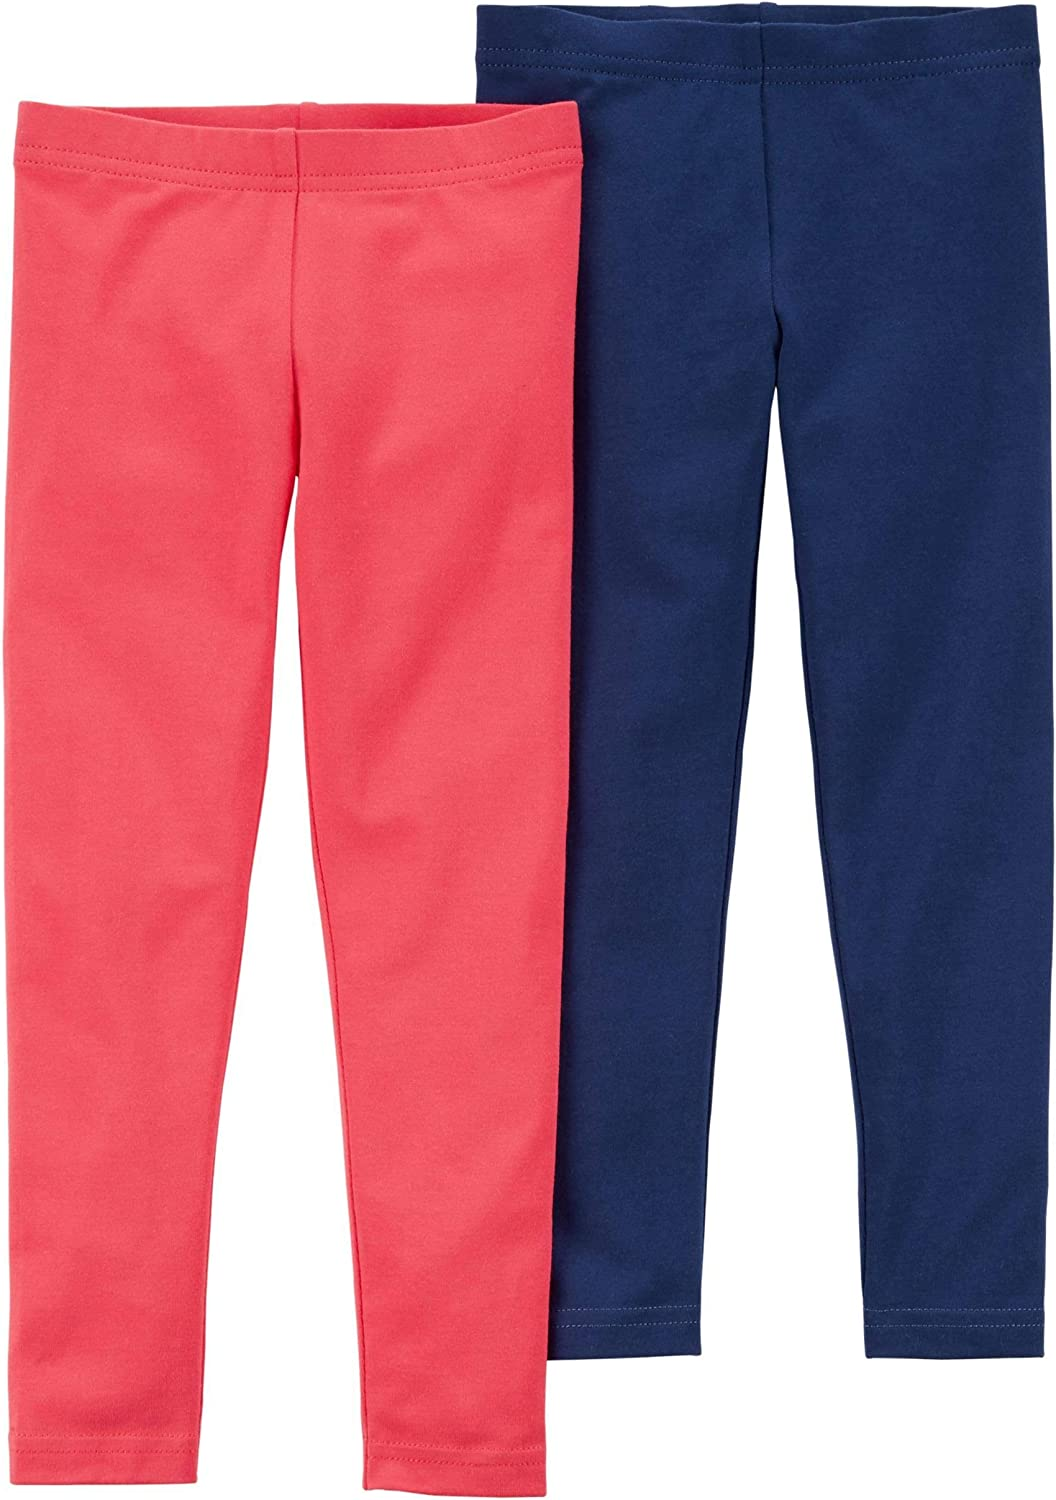 2 Pack Cotton Leggings Kids Carters Girls Baby Toddler